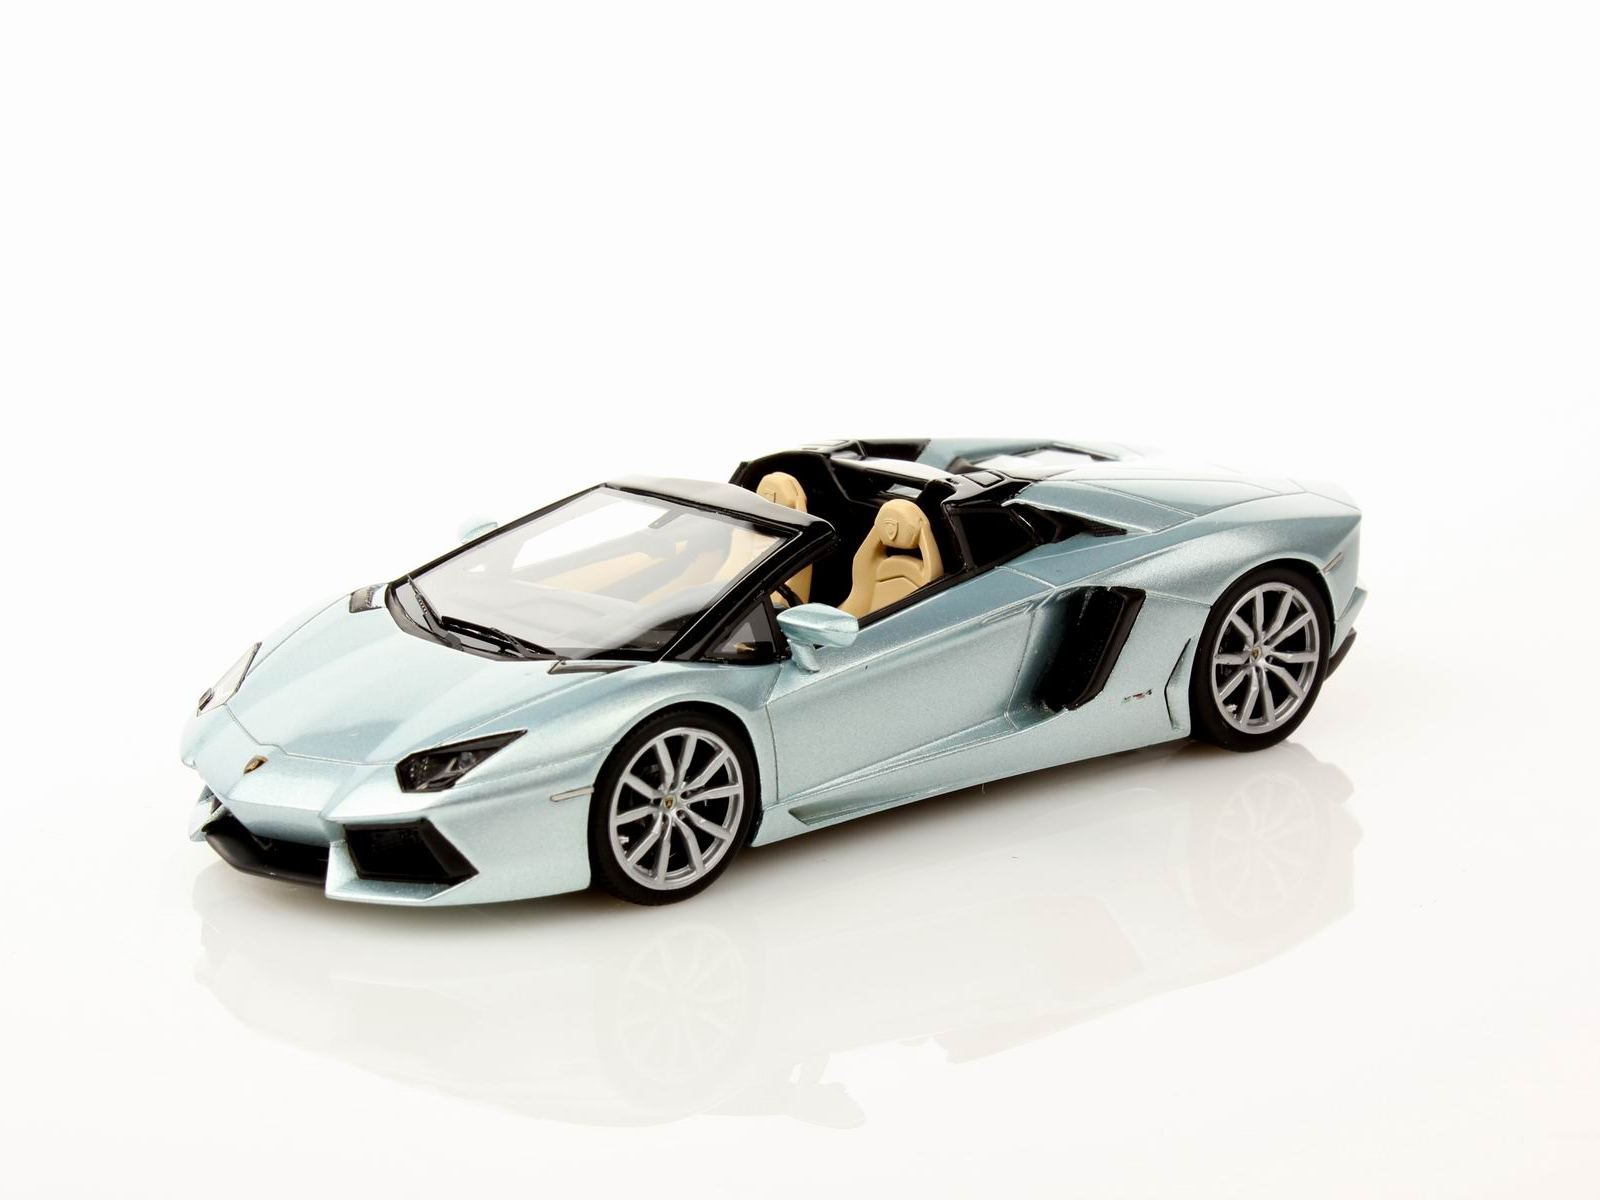 LS413A LOOK SMART LAMBORGHINI AVENTADOR LP700-4 Roadster 2012 metallic silver blue